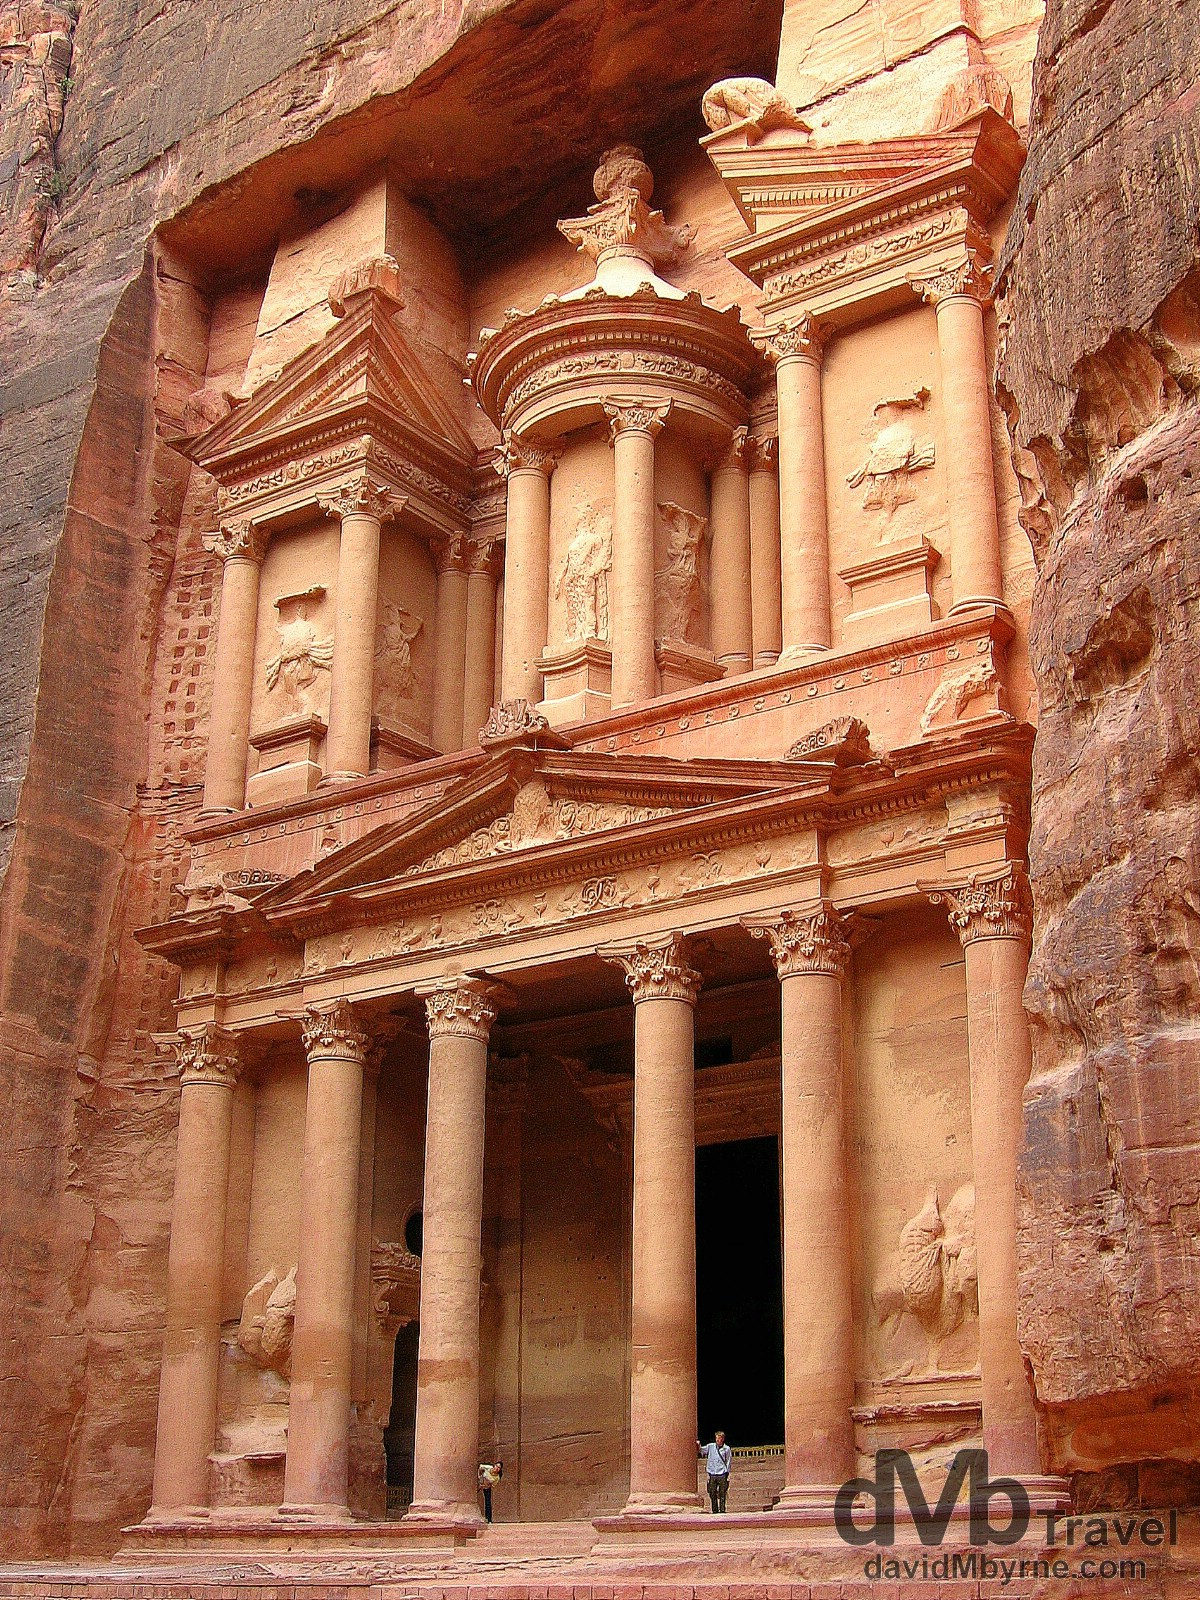 The facade of Al Khazneh (The Treasury), probably the most famous structure in Petra, Jordan. April 27, 2008.